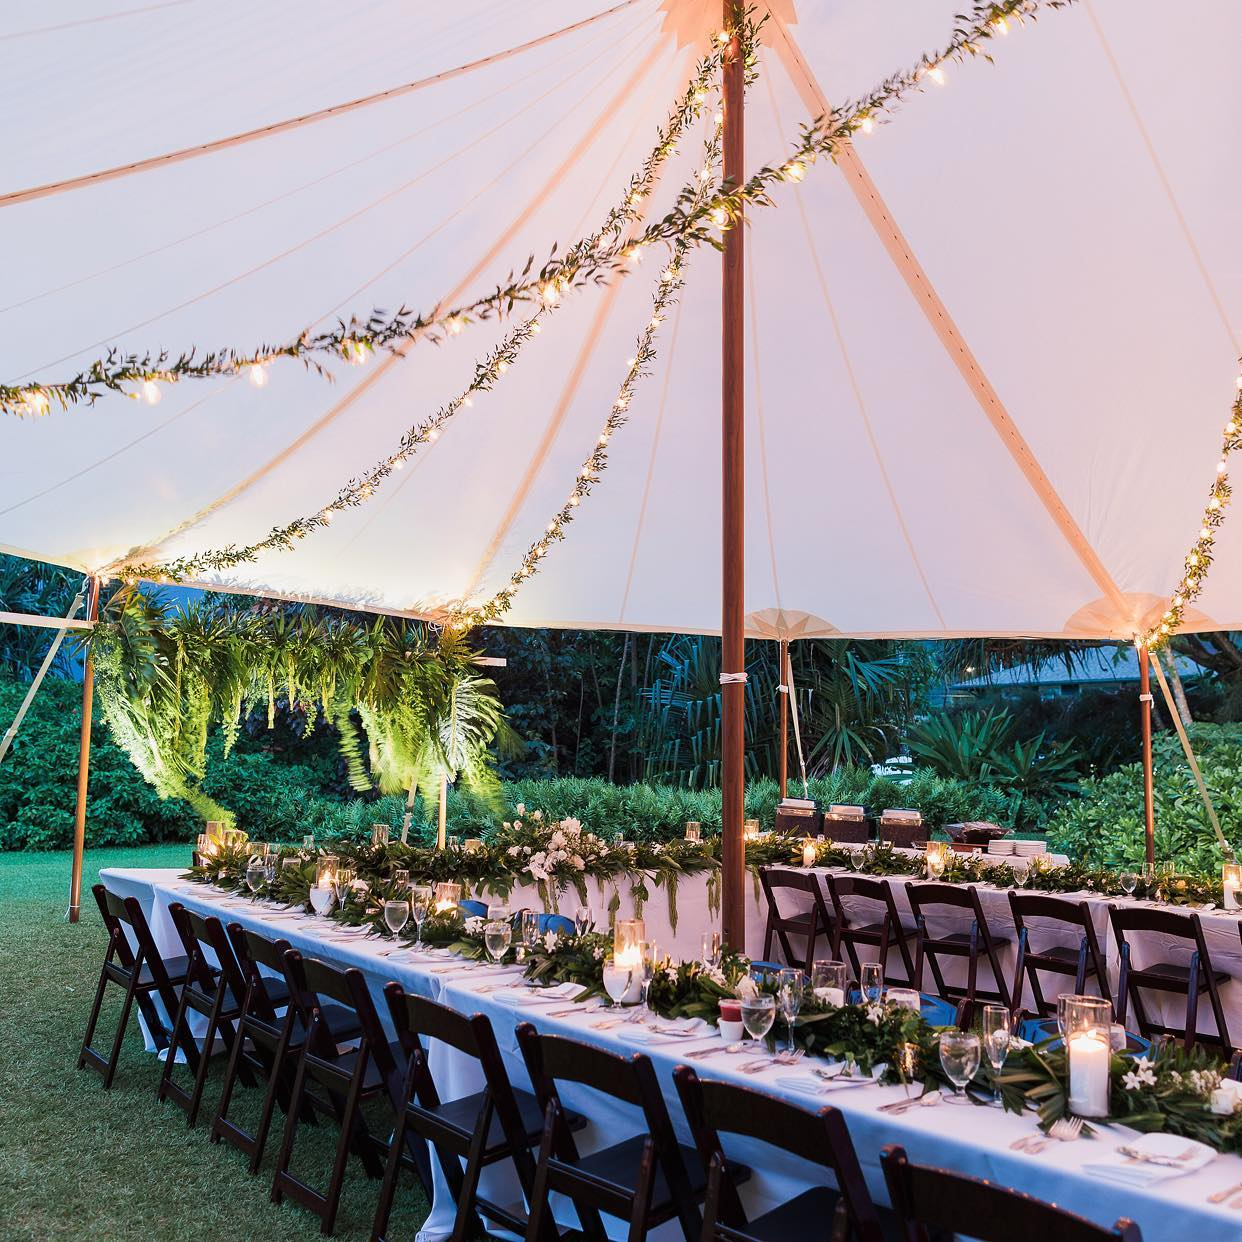 Kauai Tent & Party - Tents, tables, chairs, stages, dance floors